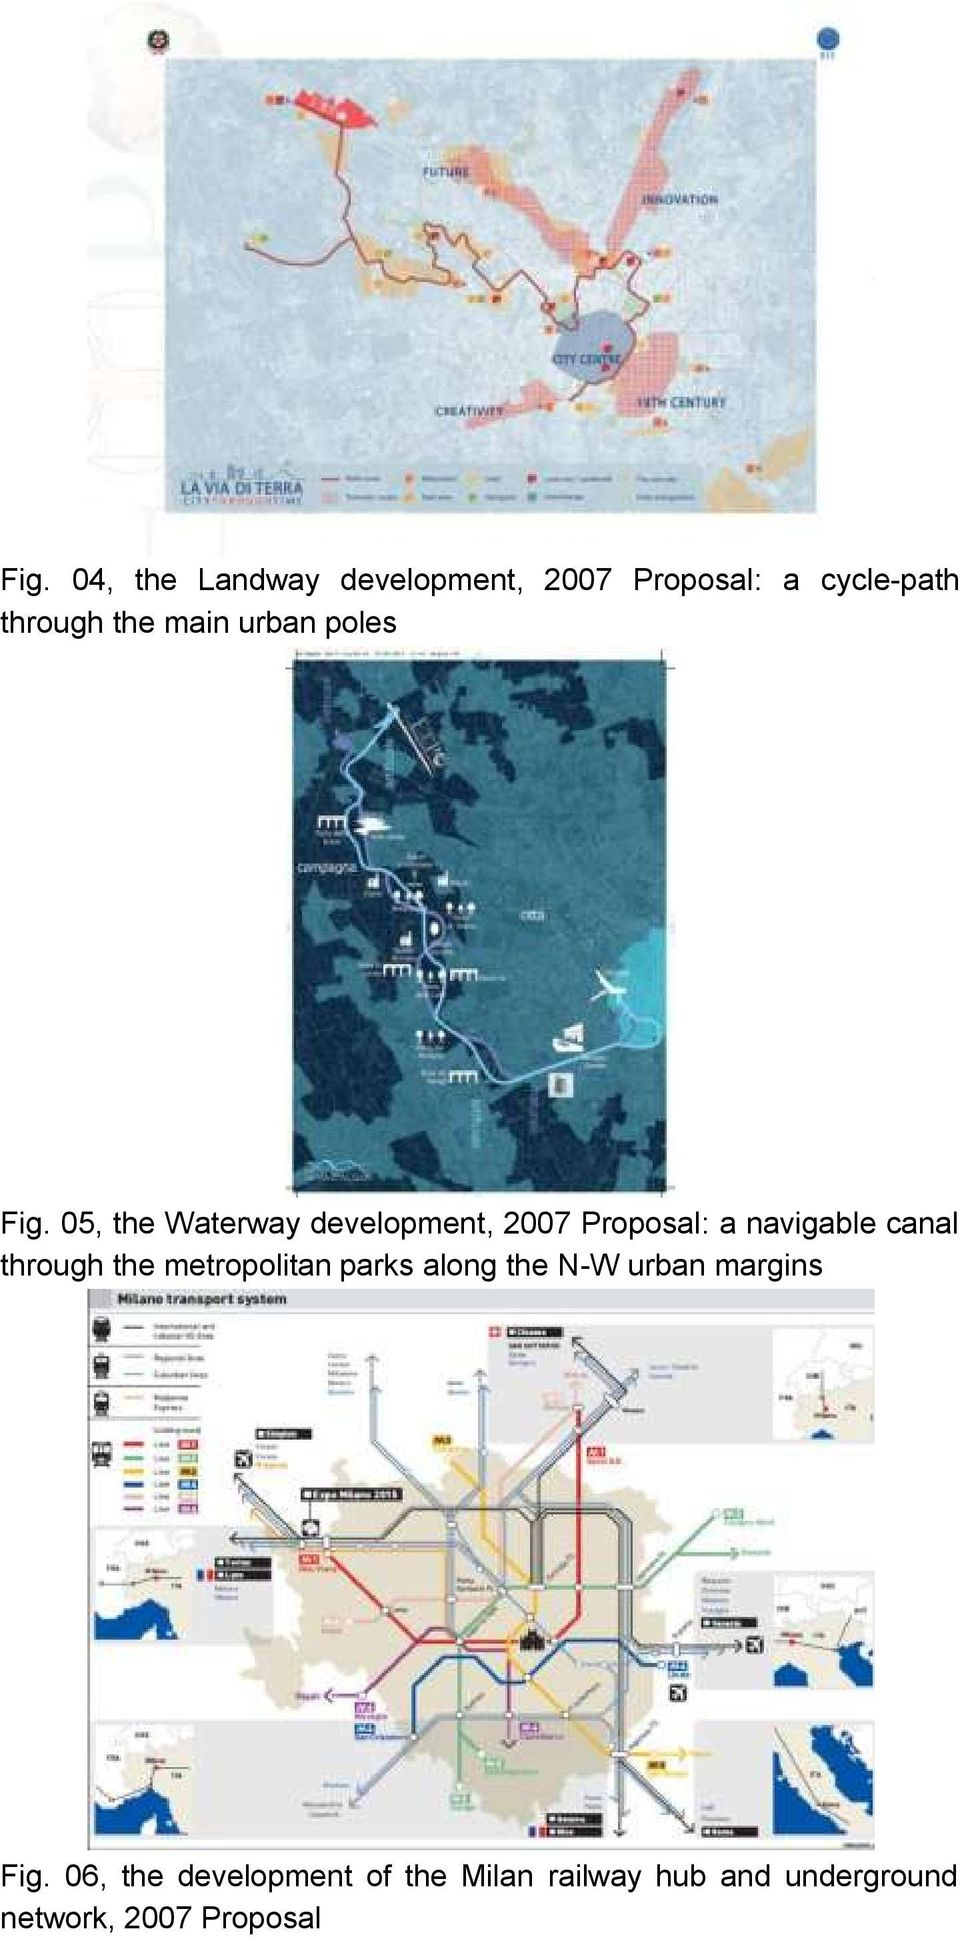 05, the Waterway development, 2007 Proposal: a navigable canal through the